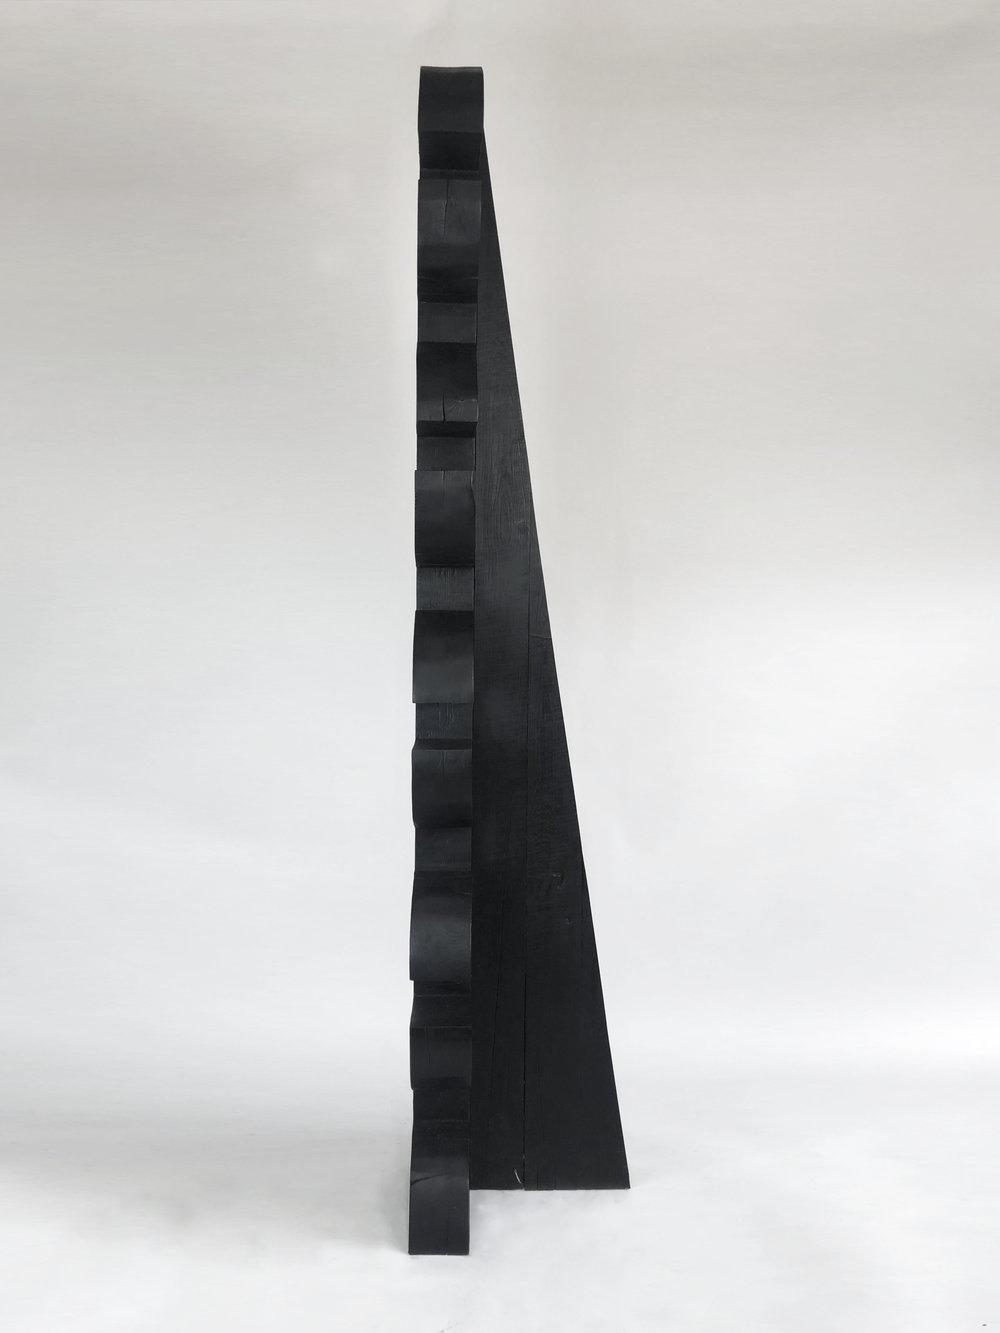 'Torr VI', Burnt oak finished with wax, 195x30x40cm